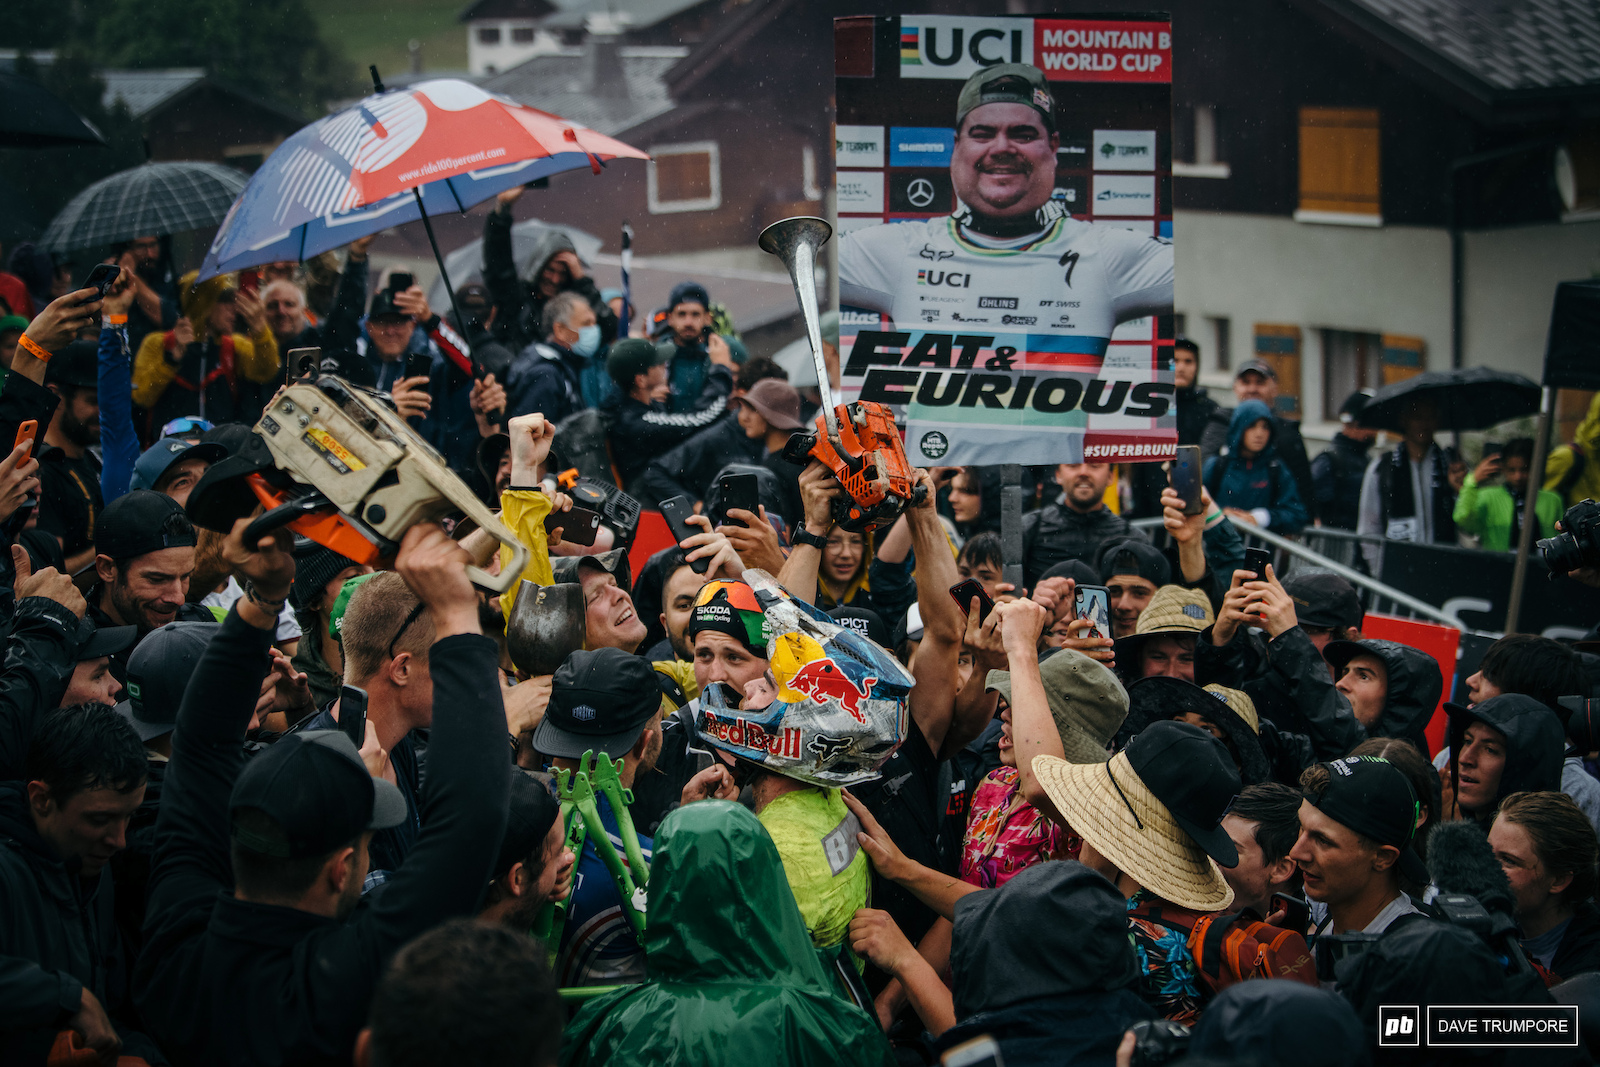 Win or lose the French crowd came to celebrate Loic Bruni the people s champion of France.